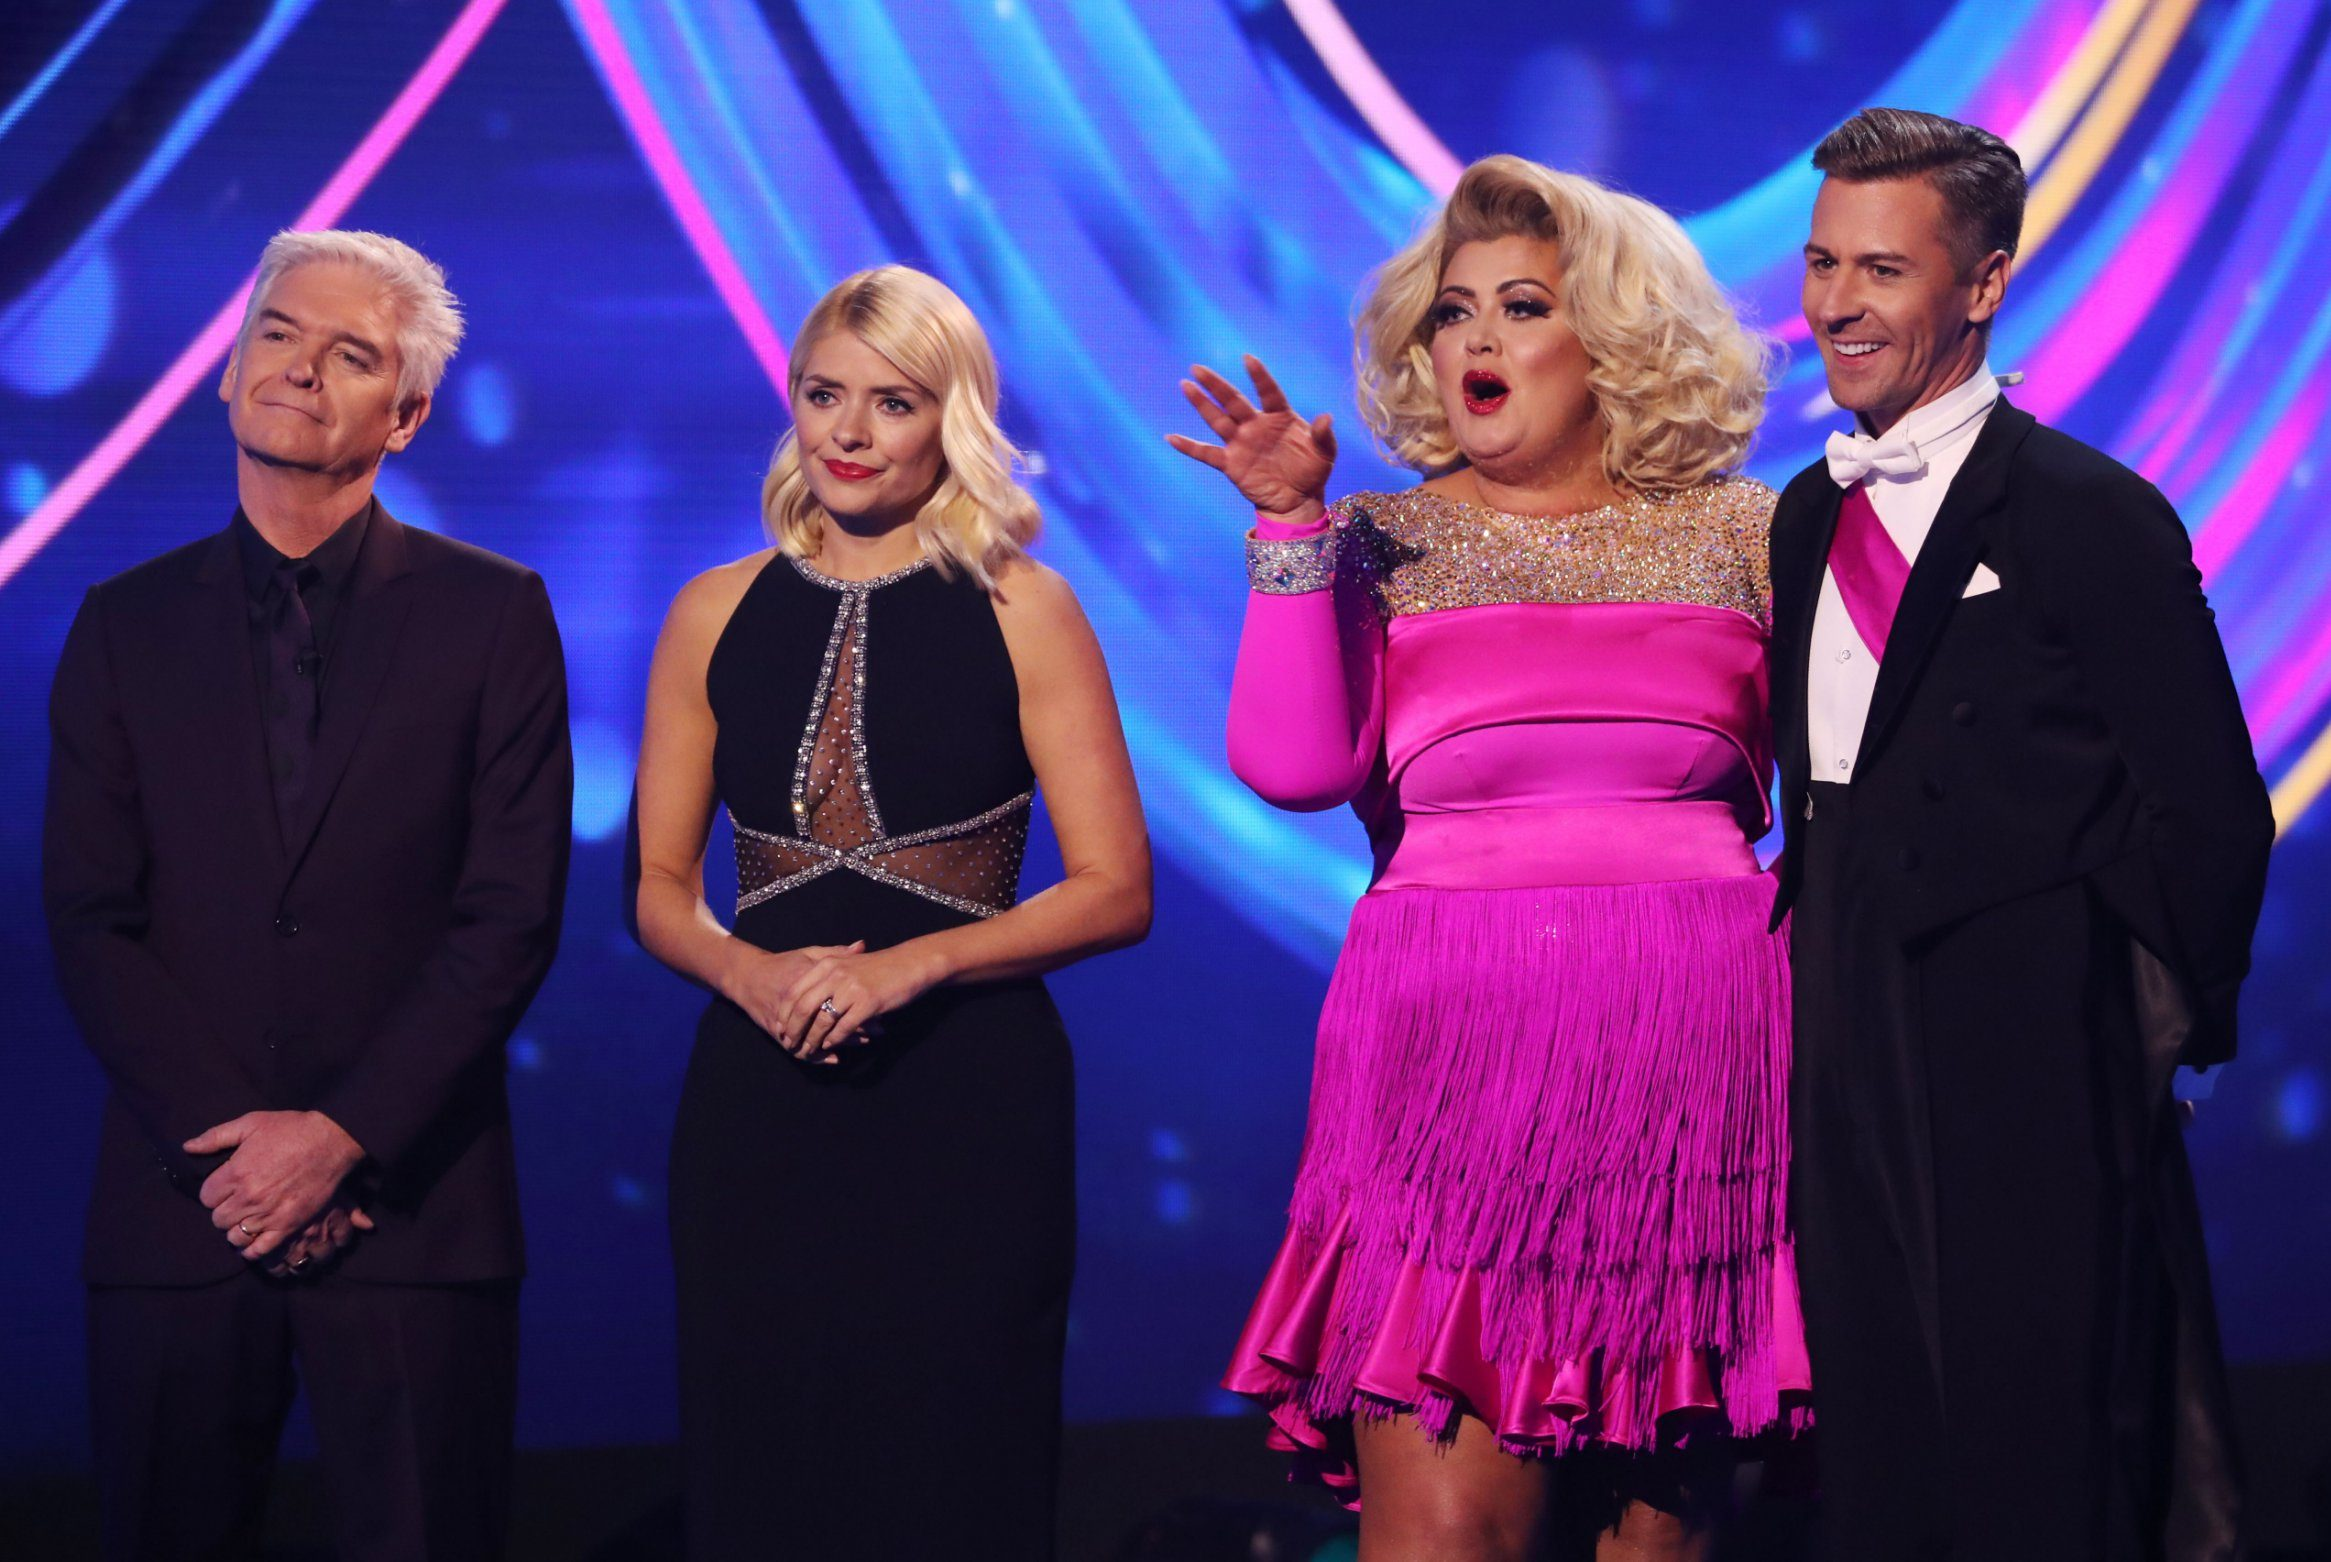 Gemma Collins returns to Dancing On Ice group chat after Jason Gardiner row